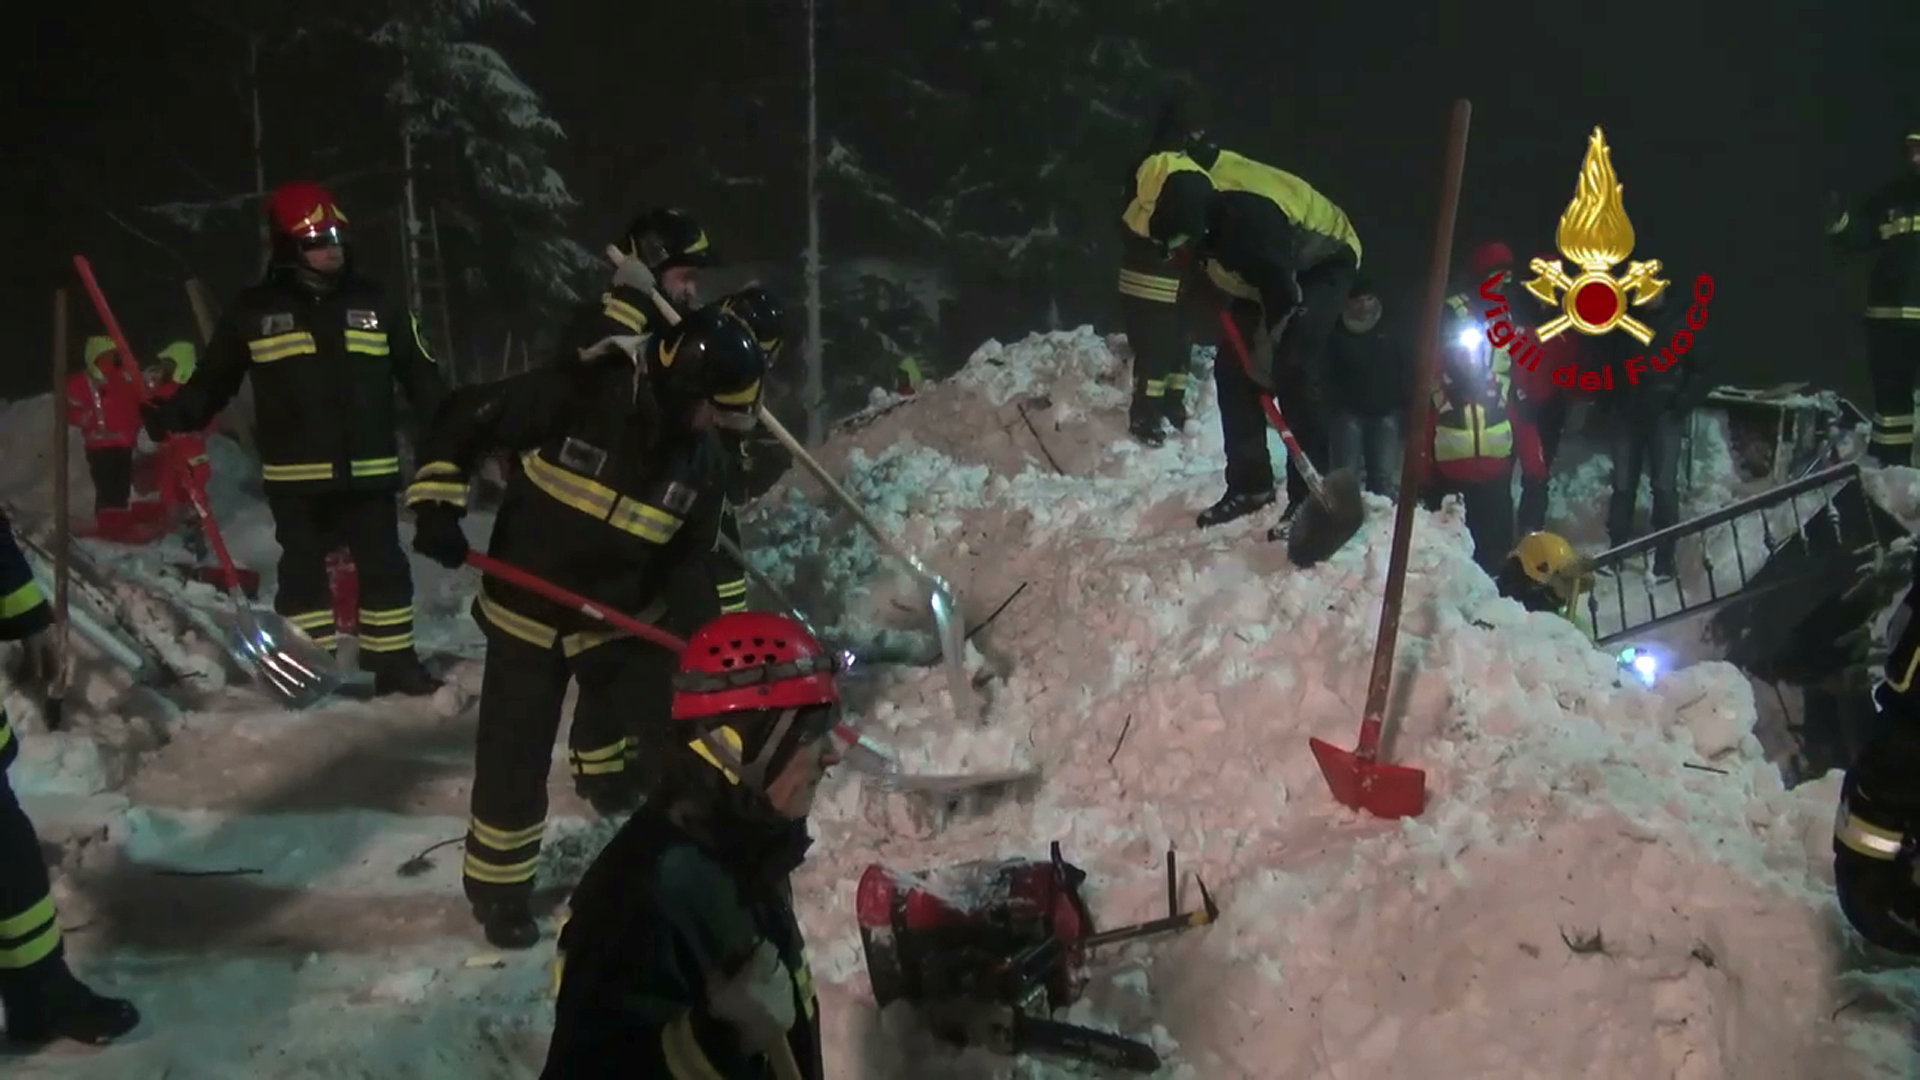 Italian firefighters working to save those buried in avalanche